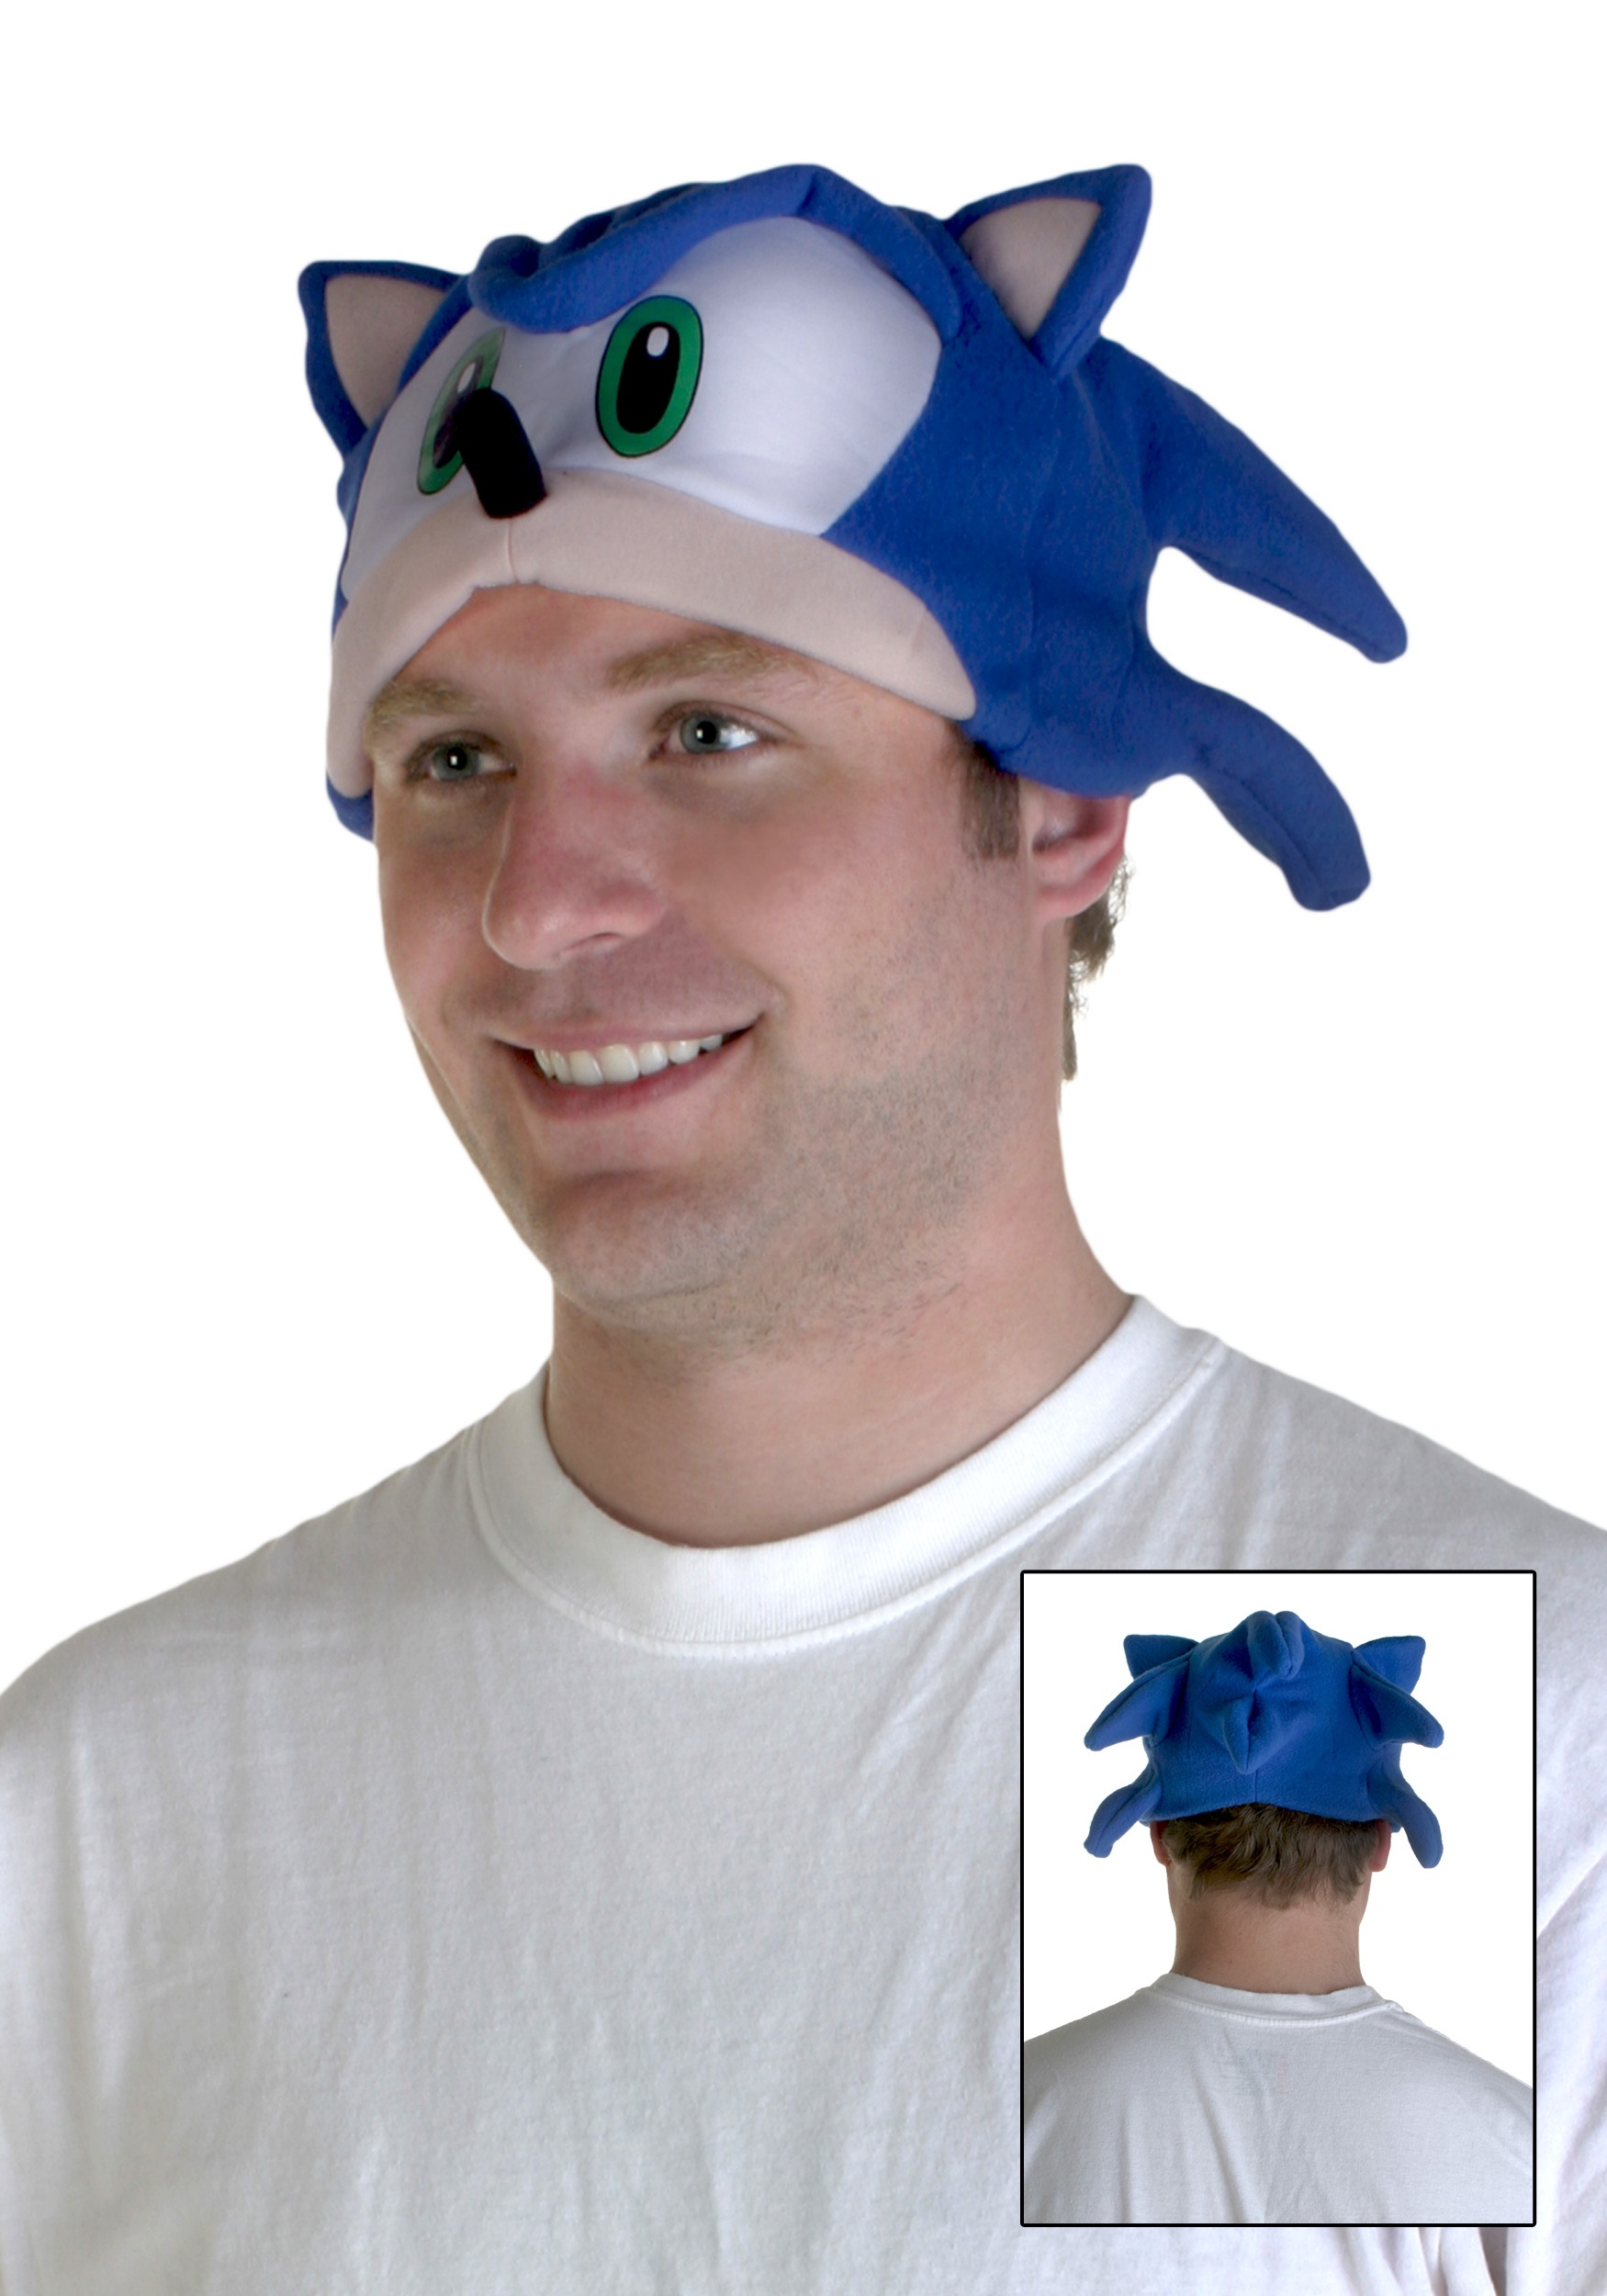 Sonic the Hedgehog Fleece Cap  sc 1 st  Halloween Costumes & Sonic the Hedgehog Fleece Cap - Halloween Costume Ideas 2016